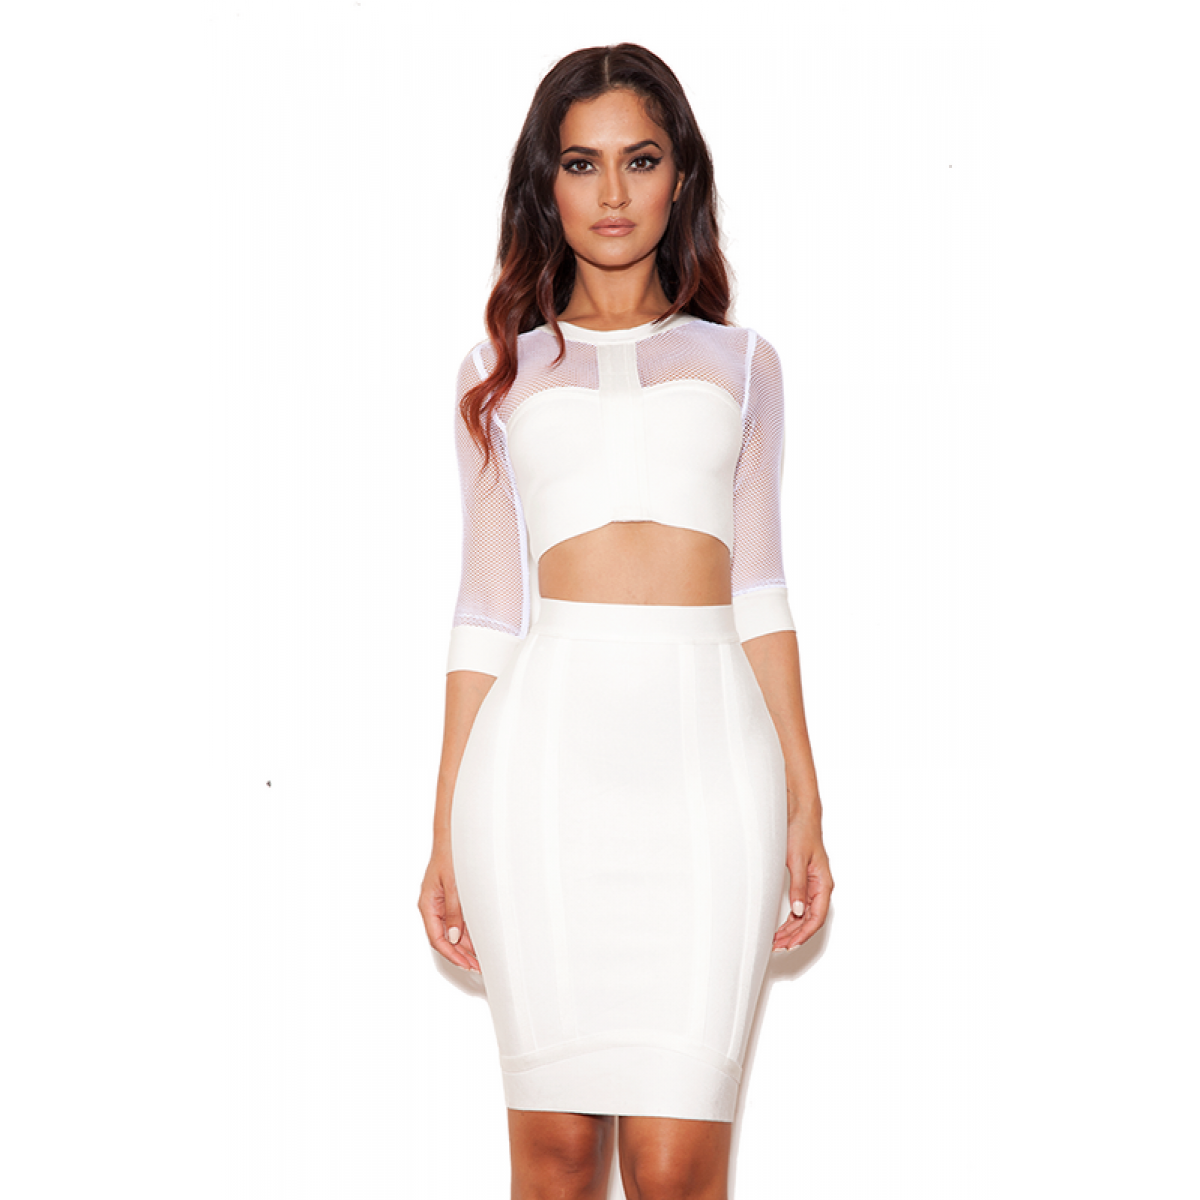 Herve Leger Teo Piece Long Sleeve White Bandage Dress SDR221 ...